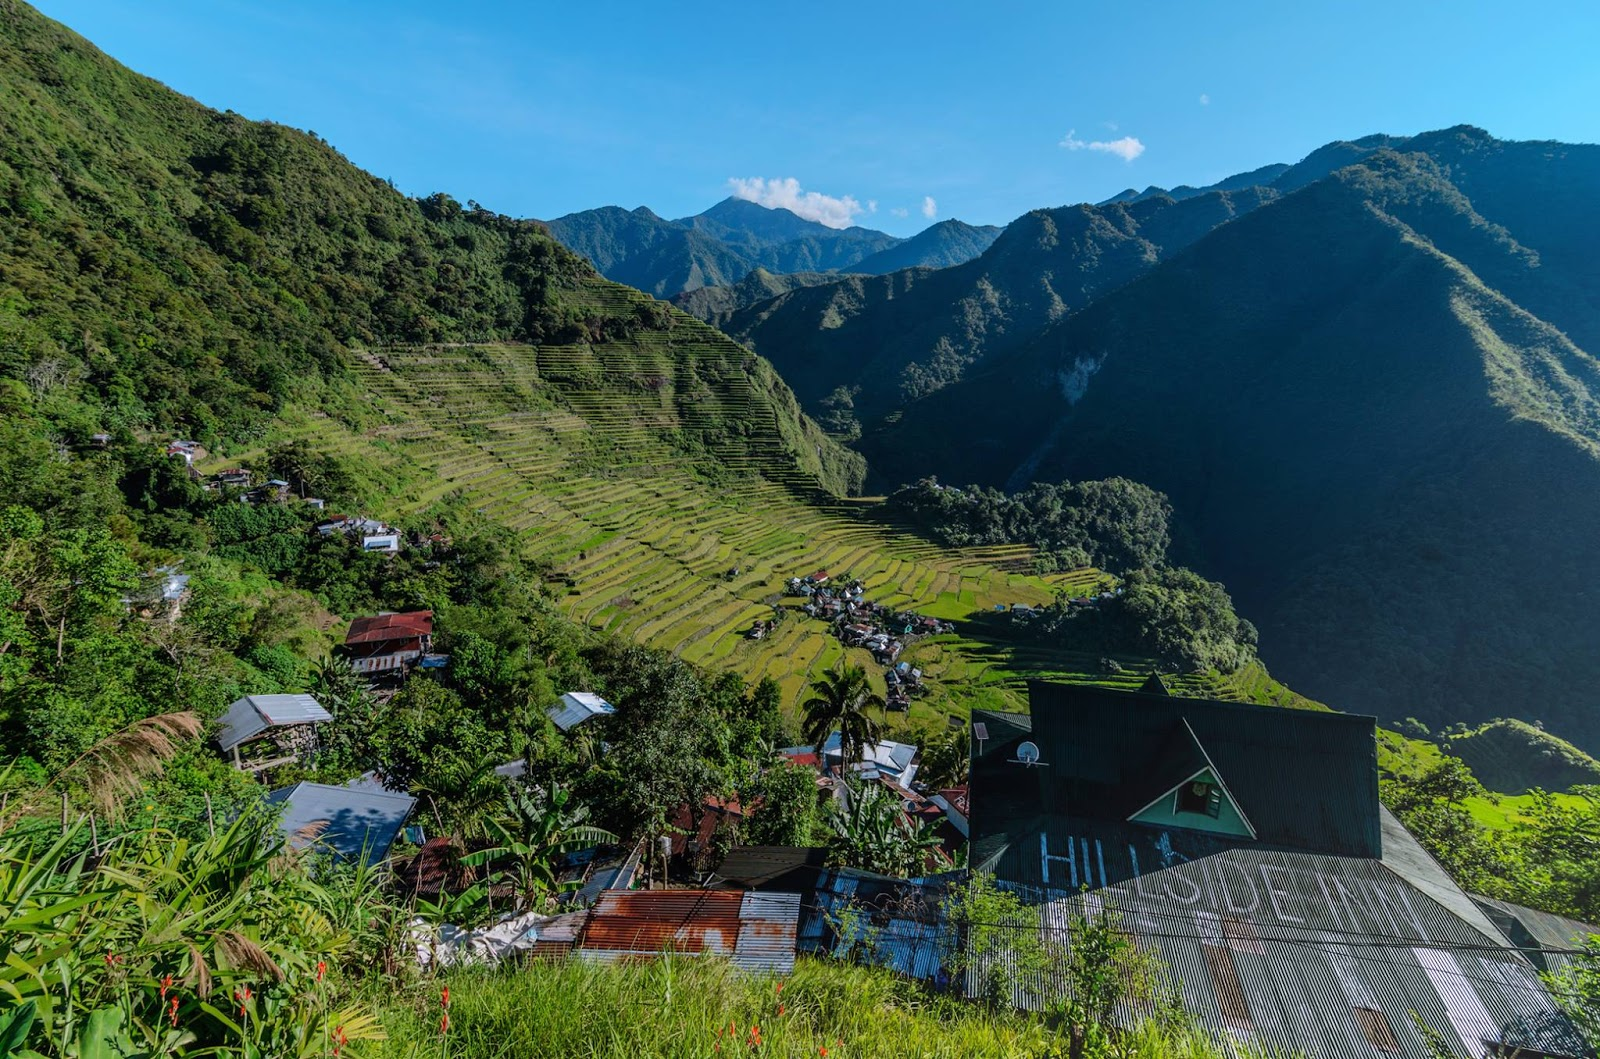 8th Wonder of the World Batad Rice Terraces Ifugao Cordillera Administrative Region Philippines Light Almost Filled Out